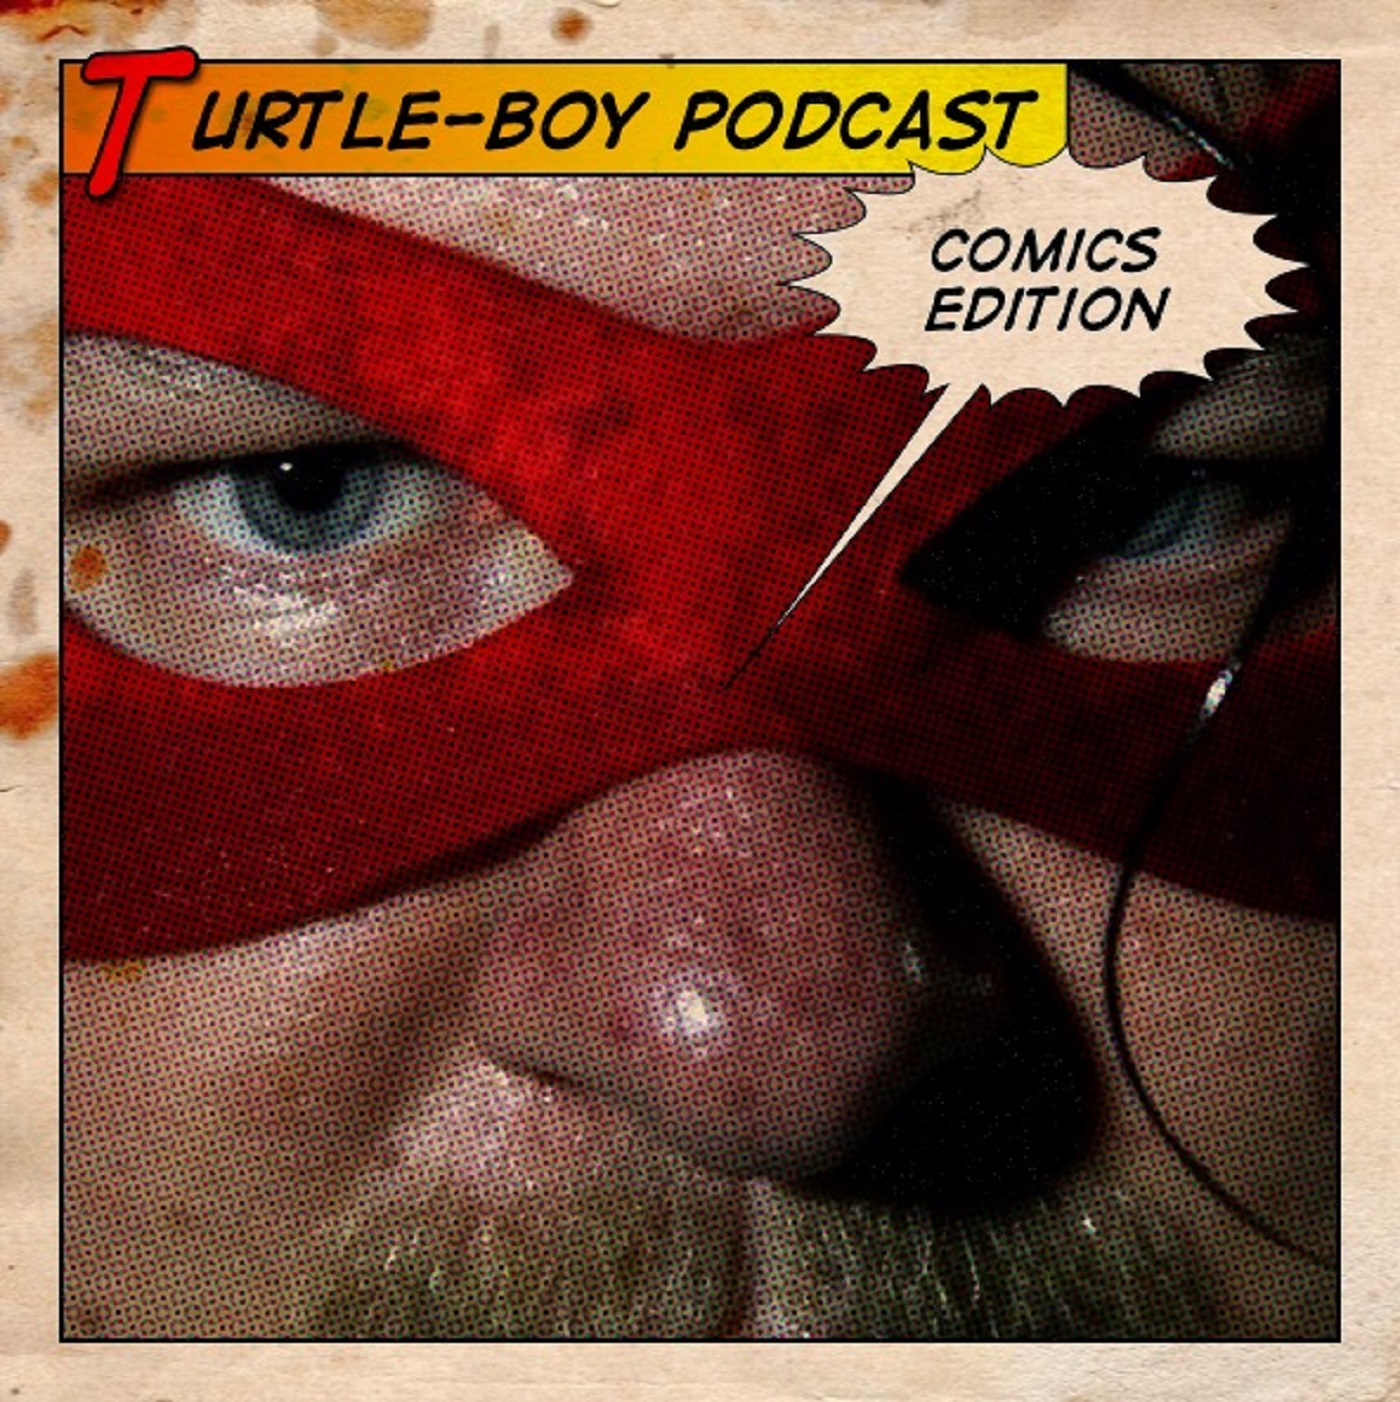 Turtle-Boy Podcast: Comics Edition